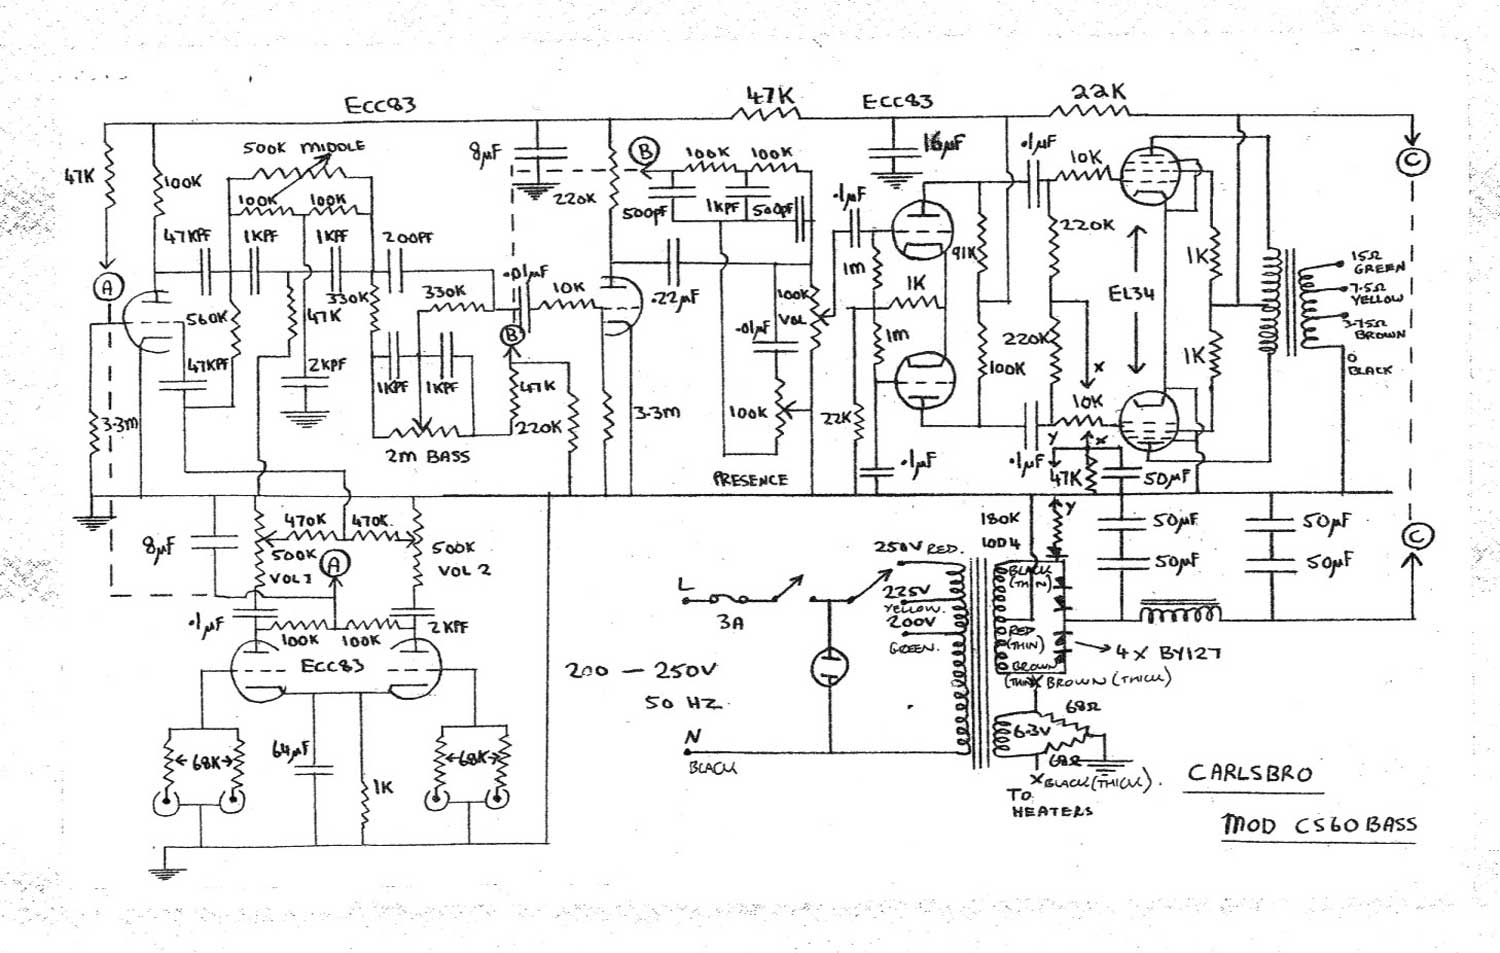 bass guitar wiring diagram honeywell vc7931 actuator ibanez s series get free image about